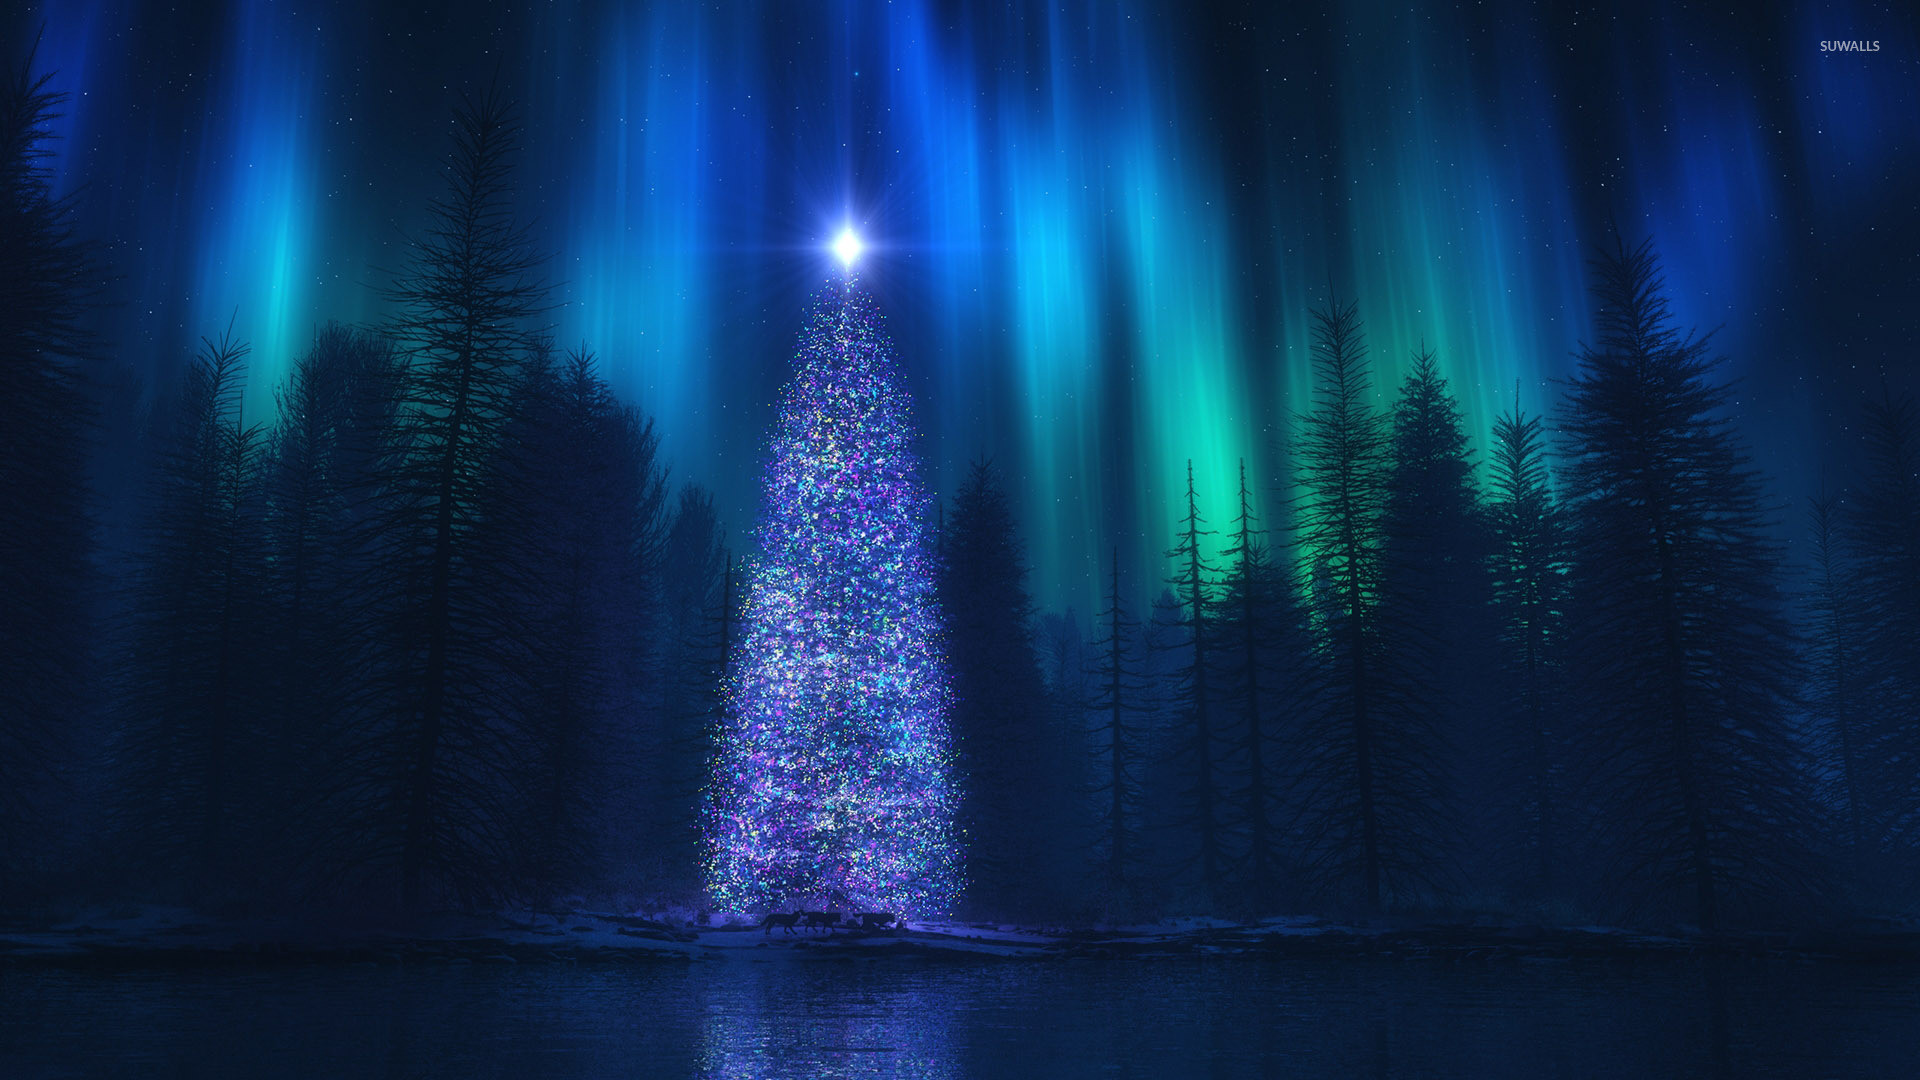 Christmas tree in the forest wallpaper jpg